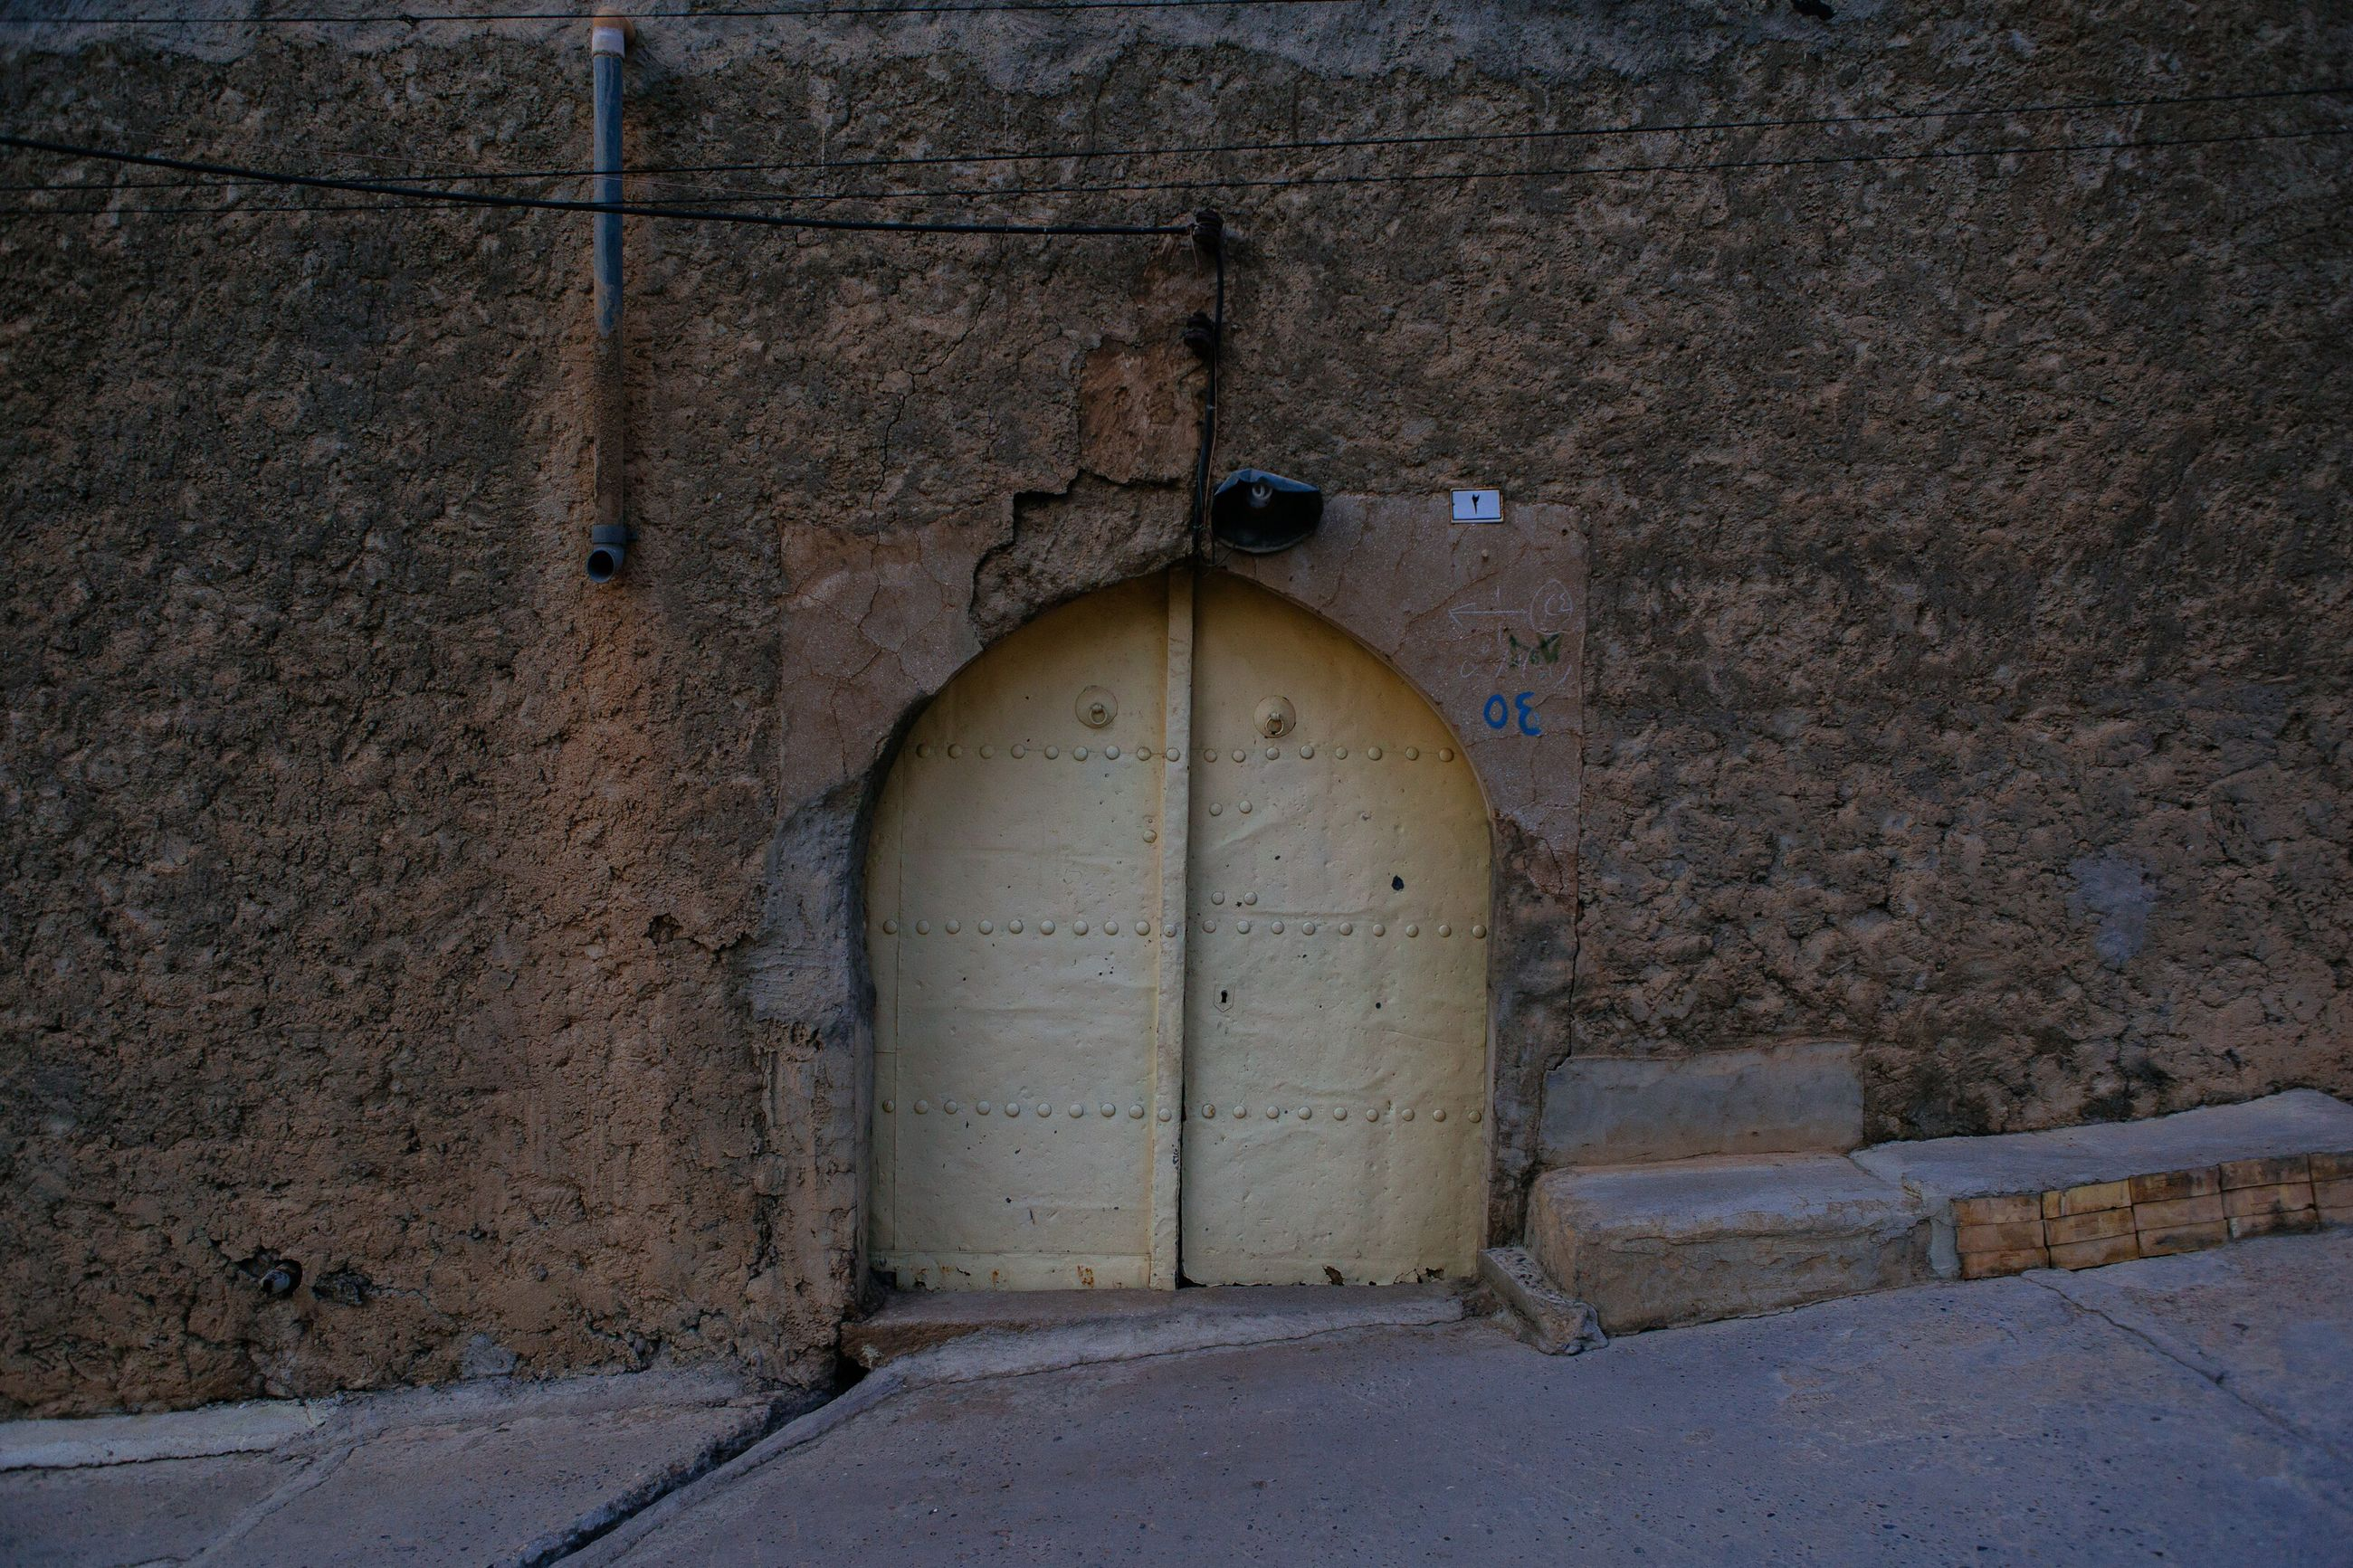 architecture, built structure, building exterior, wall - building feature, old, wall, stone wall, no people, lighting equipment, outdoors, day, street light, street, building, entrance, door, arch, brick wall, sunlight, religion